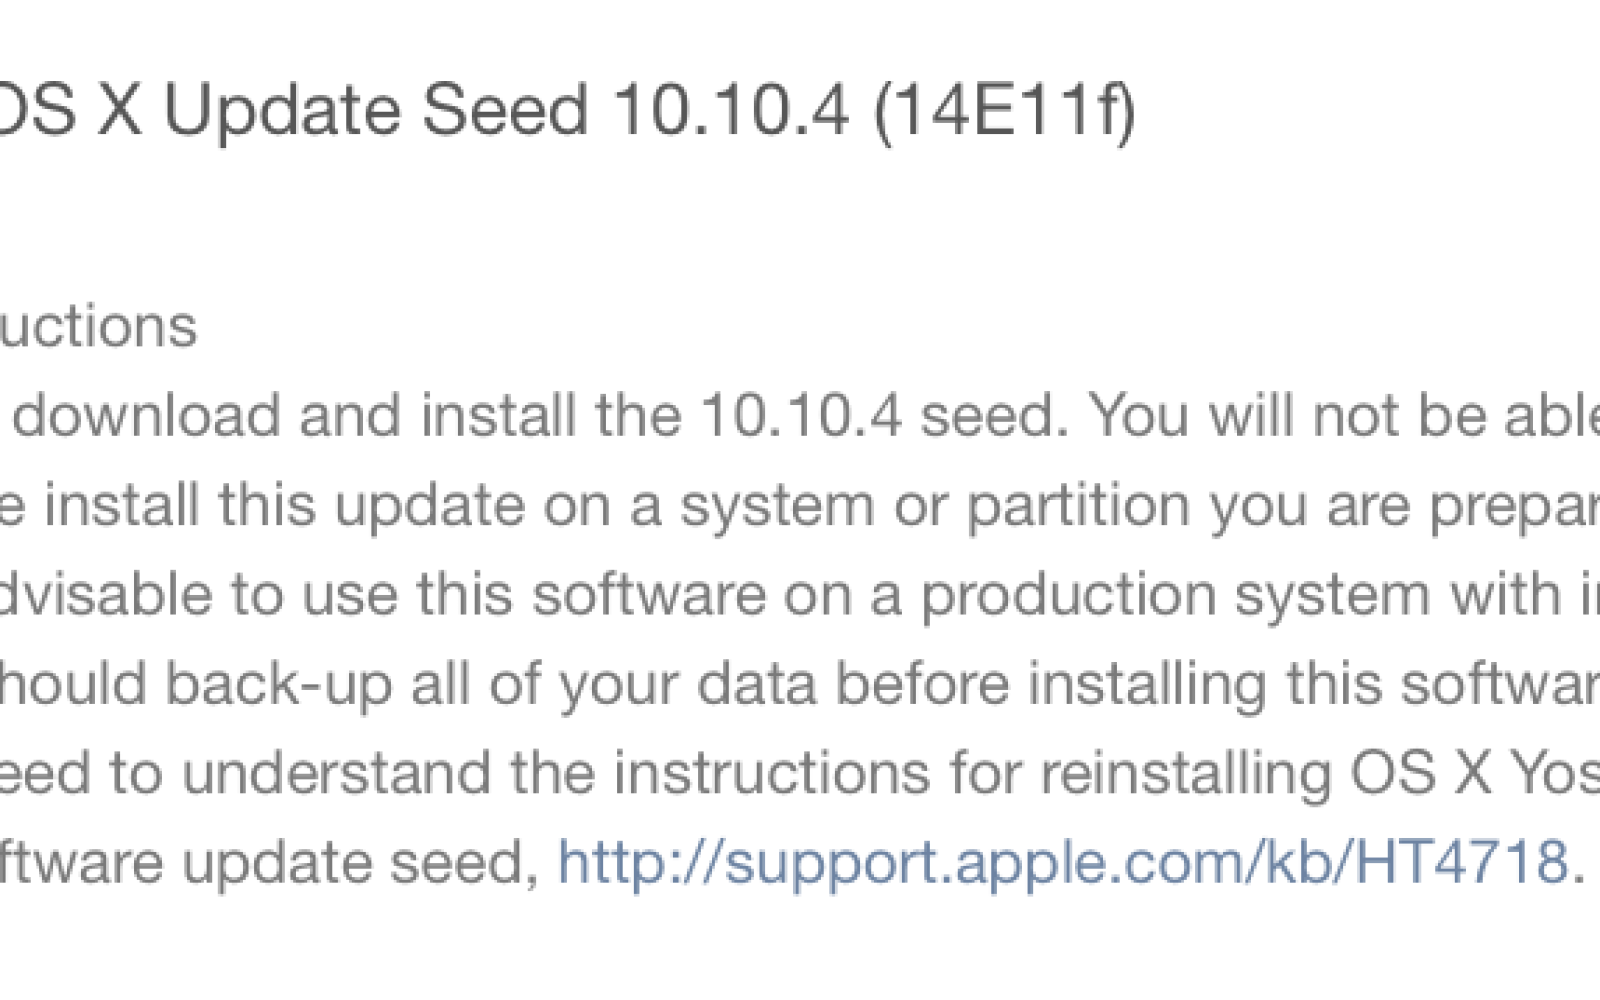 appleseed - 9to5Mac